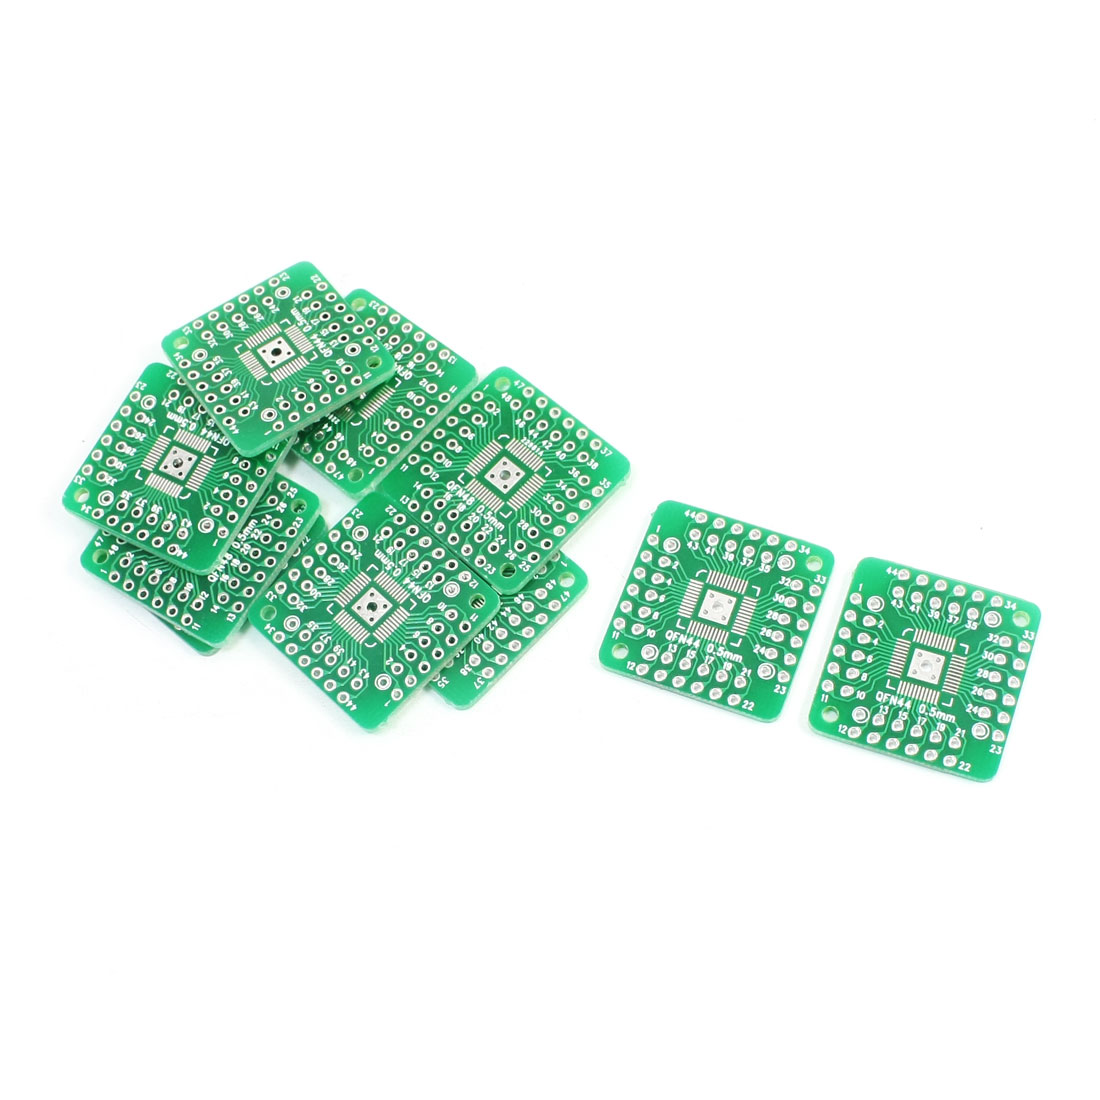 10 Pcs Dual Sides SMD QFN48 QFN44 0.5mm to DIP 48/44 2.54mm Pitch PCB Adapter Plate Convertor Board